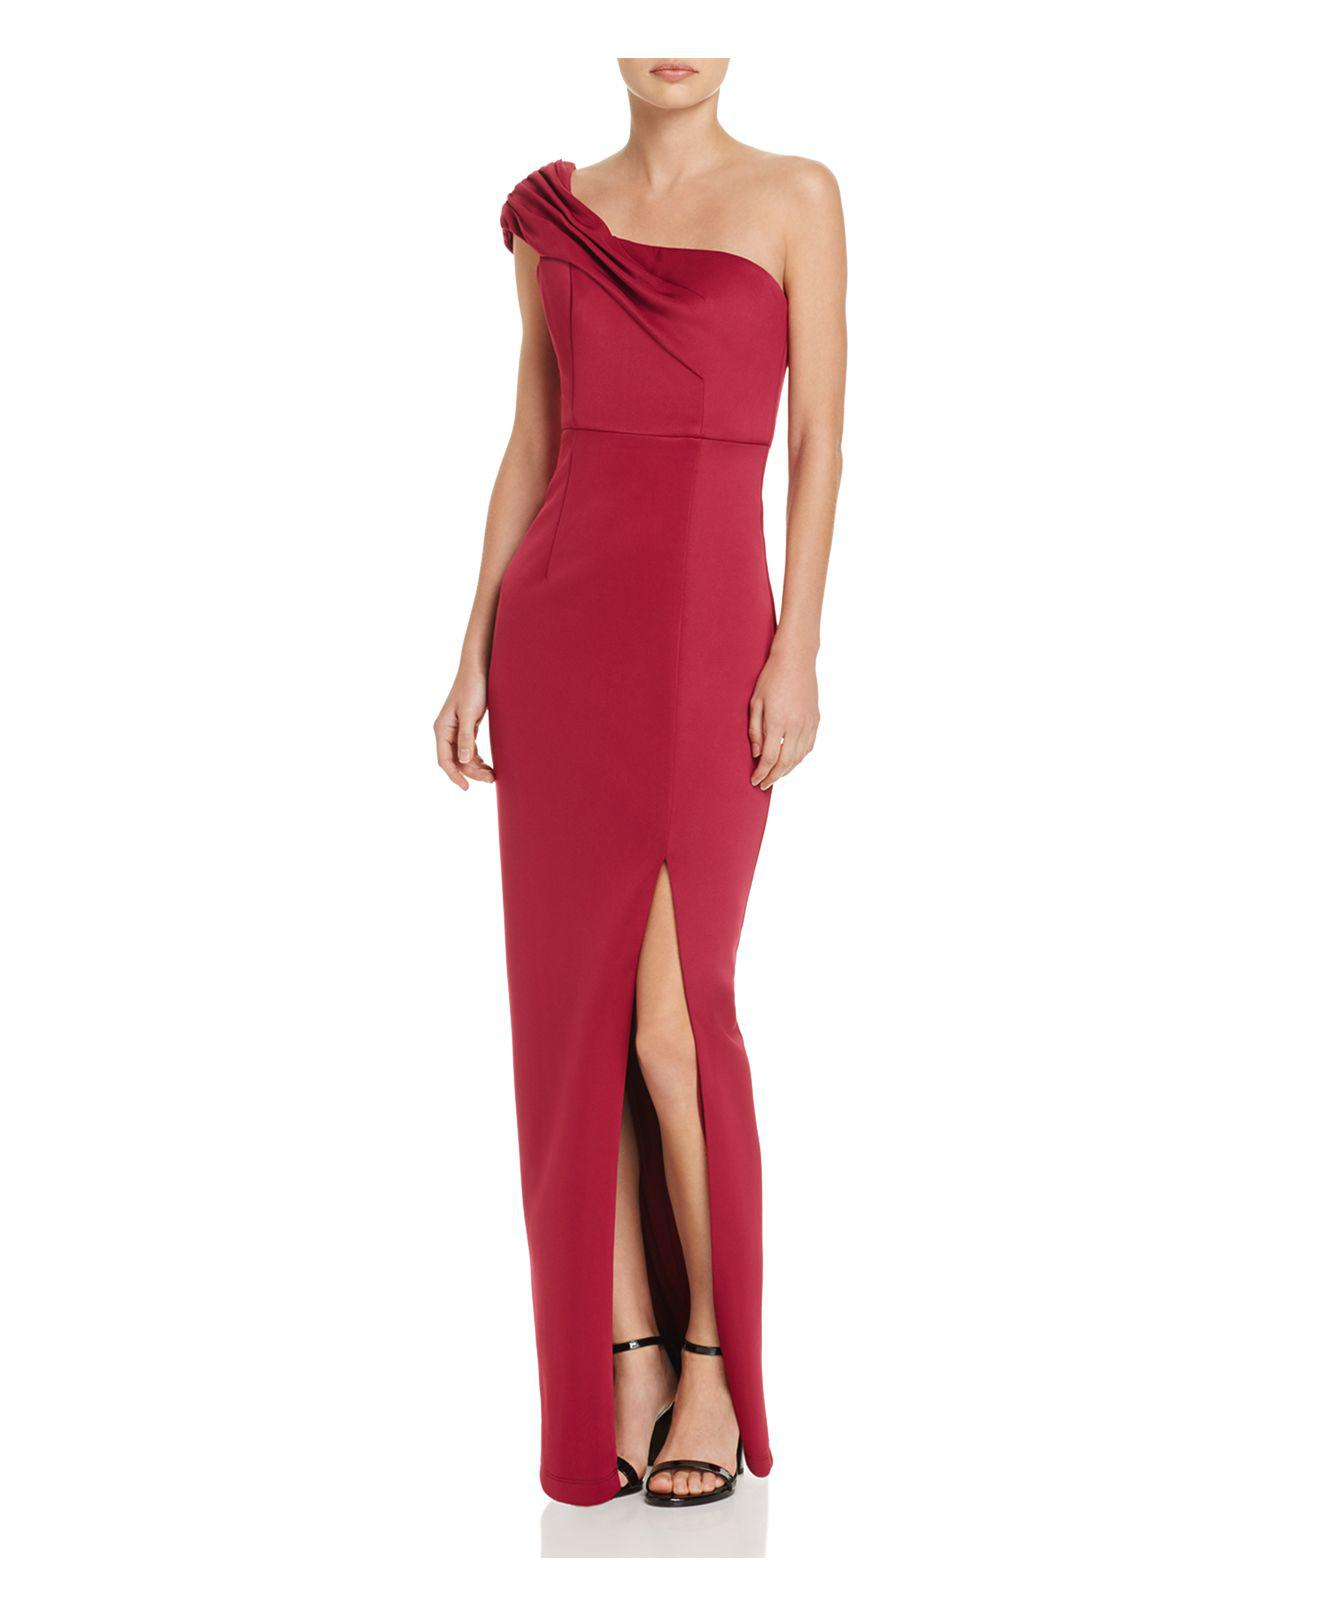 2b3cee2844ab Lyst - Bariano Florence One-shoulder Column Gown in Red